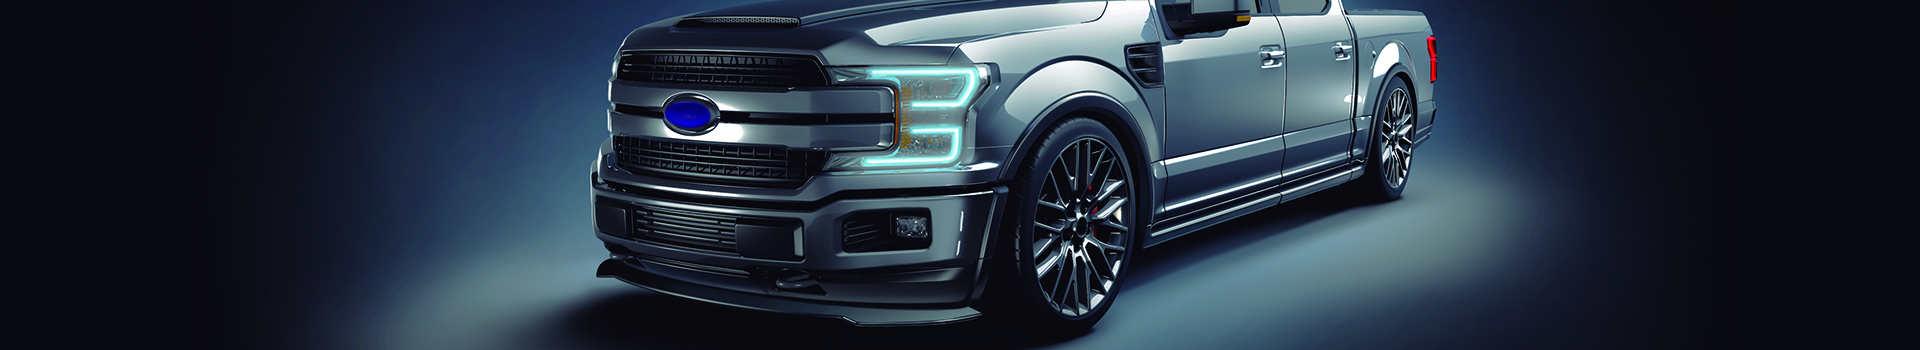 Air Design Ford F-150 Street Series Body Kit